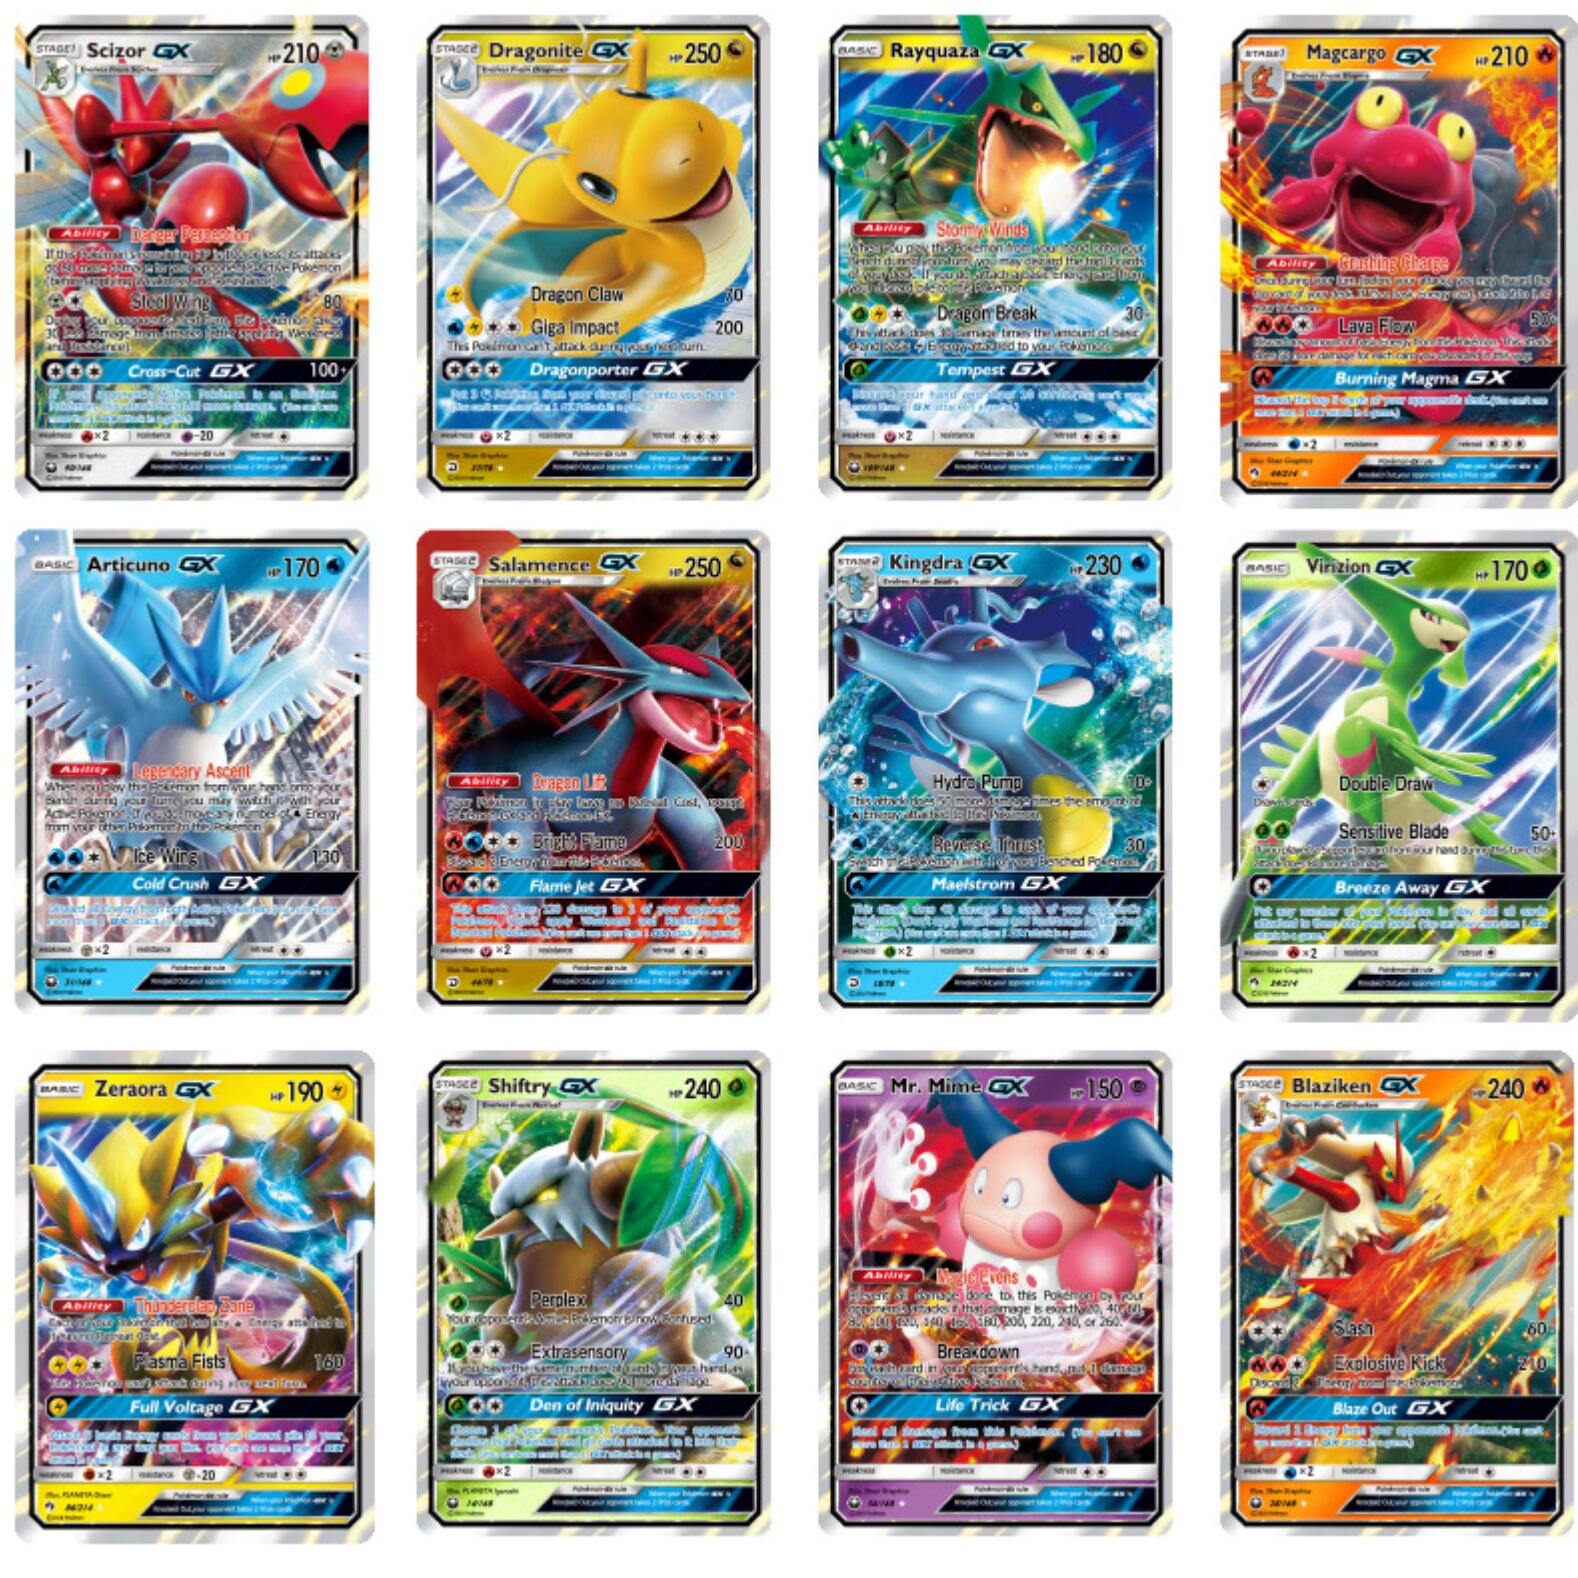 200 Pcs 25 50pcs GX MEGA Shining TAKARA TOMY Cards Game Battle Carte 100pcs Trading Cards Game Children Toy